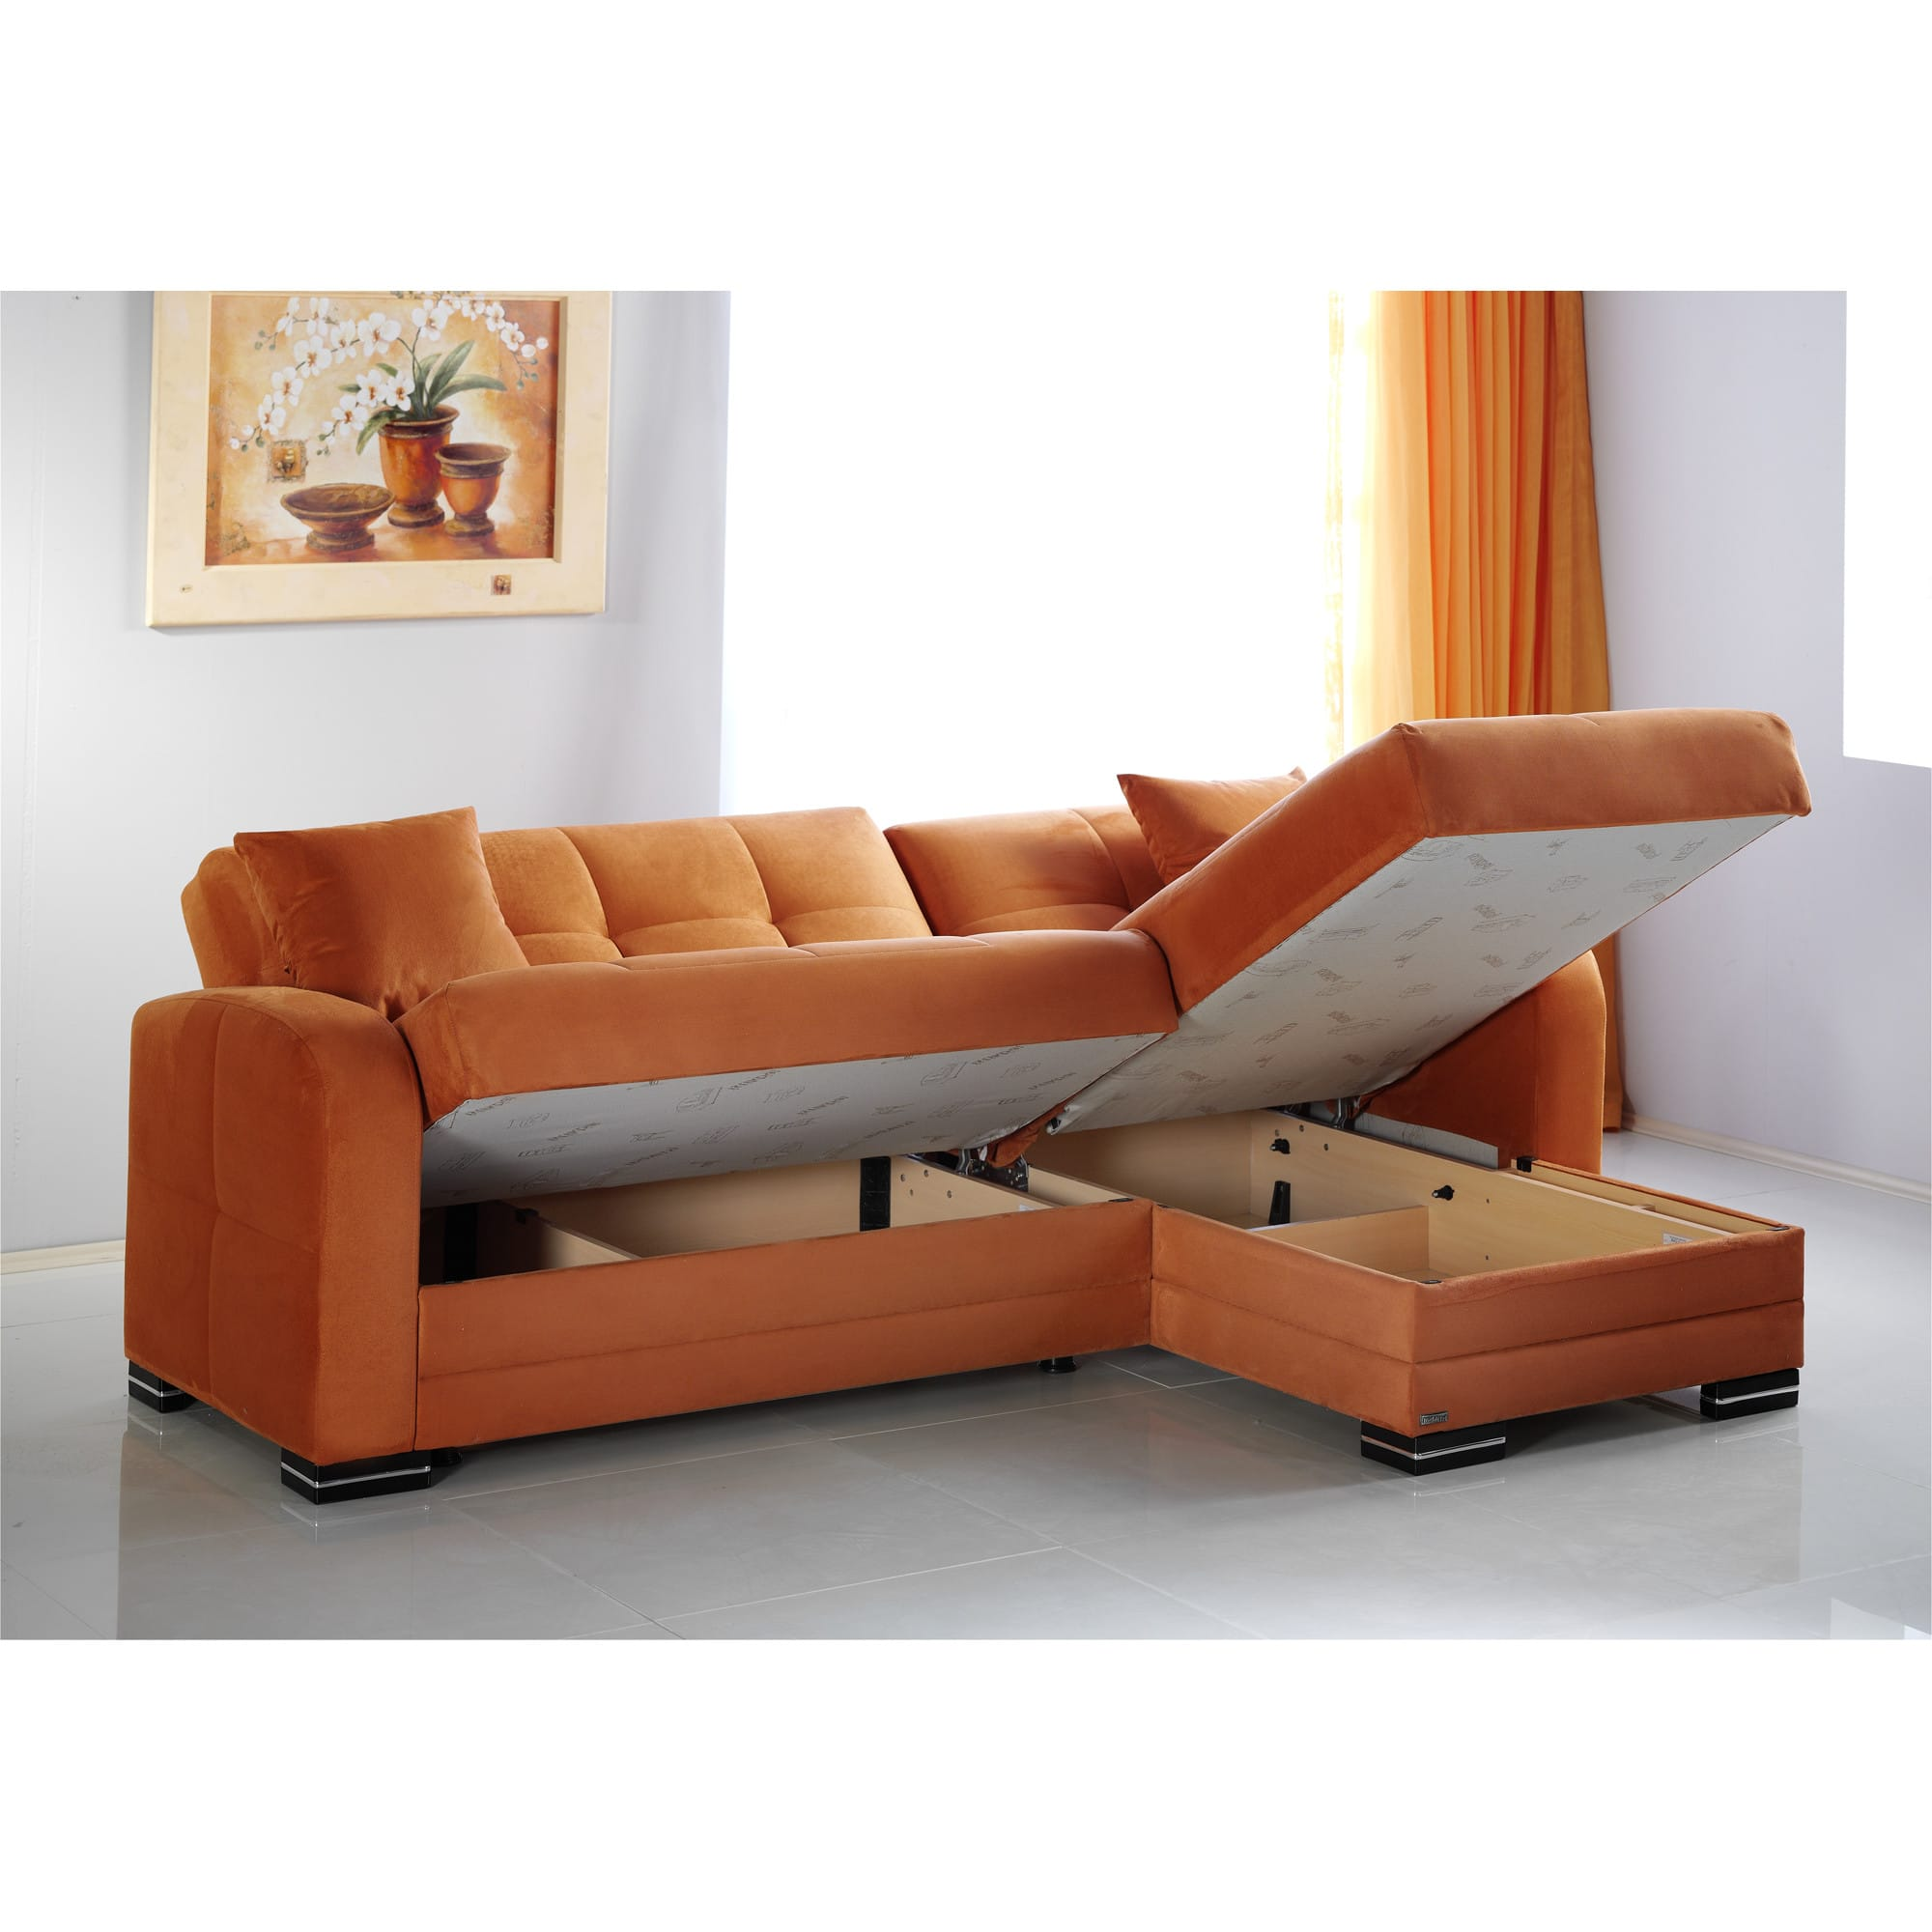 orange sectional sofa roselawnlutheran. Black Bedroom Furniture Sets. Home Design Ideas